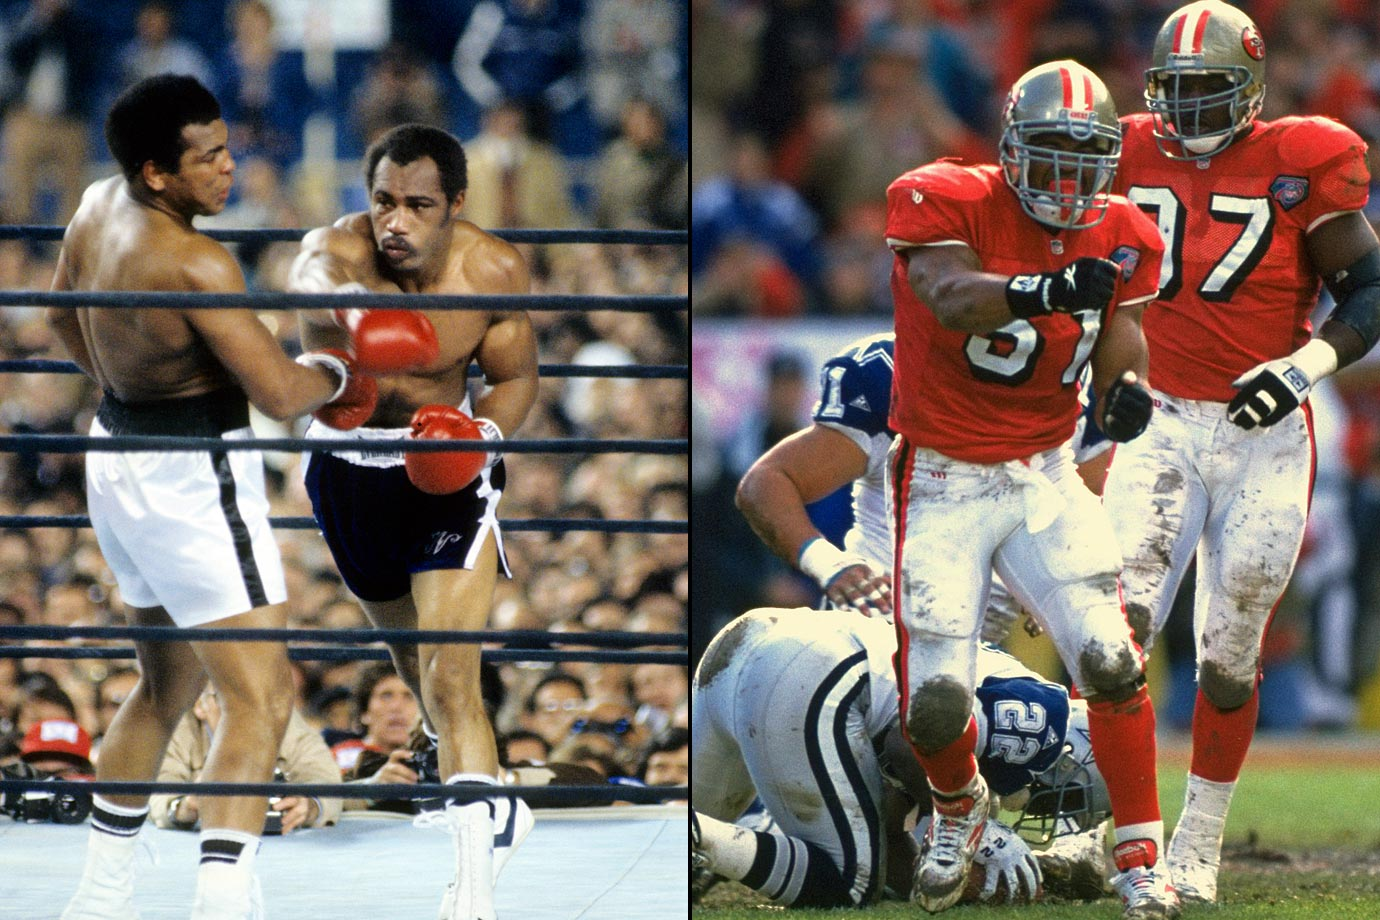 In honor of his father's boxing career, former NFL linebacker Ken Norton Jr. would pose in a boxing stance and punch the goal post after he scored a defensive touchdown.